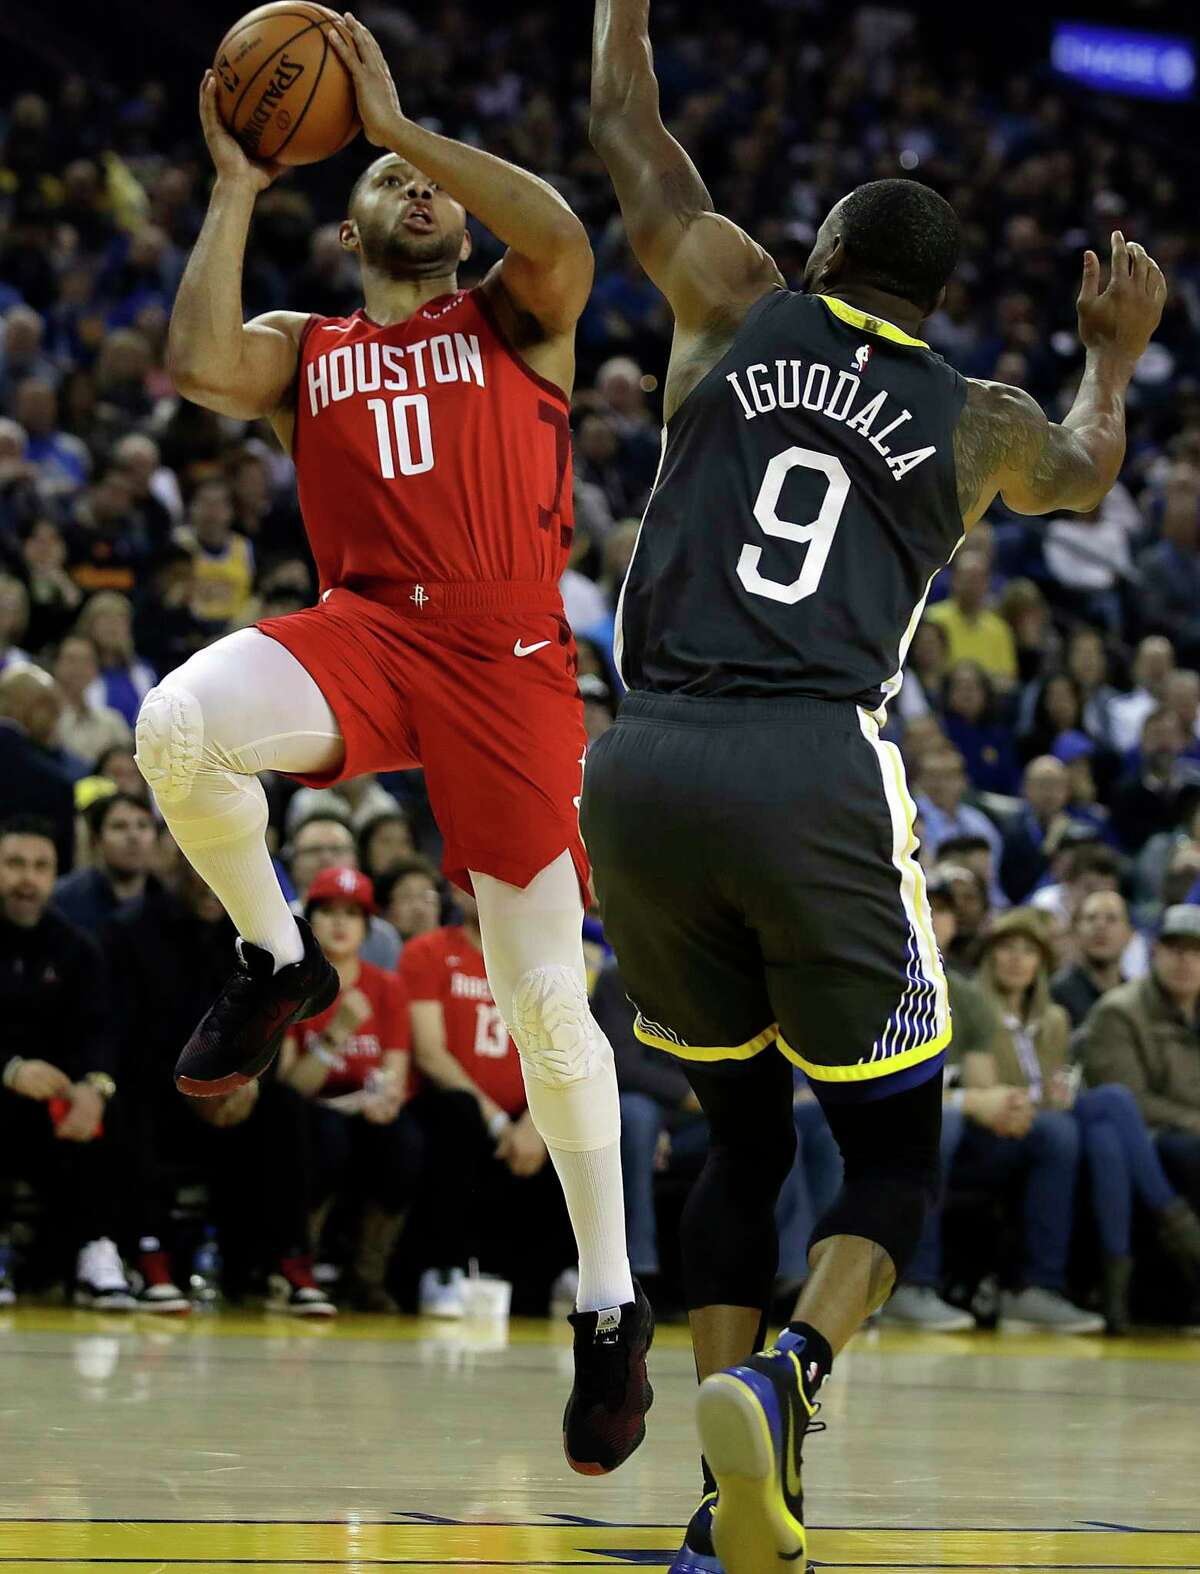 Houston Rockets' Eric Gordon, left, drives the ball against Golden State Warriors' Andre Iguodala, right, during the first half of an NBA basketball game Saturday, Feb. 23, 2019, in Oakland, Calif. (AP Photo/Ben Margot)